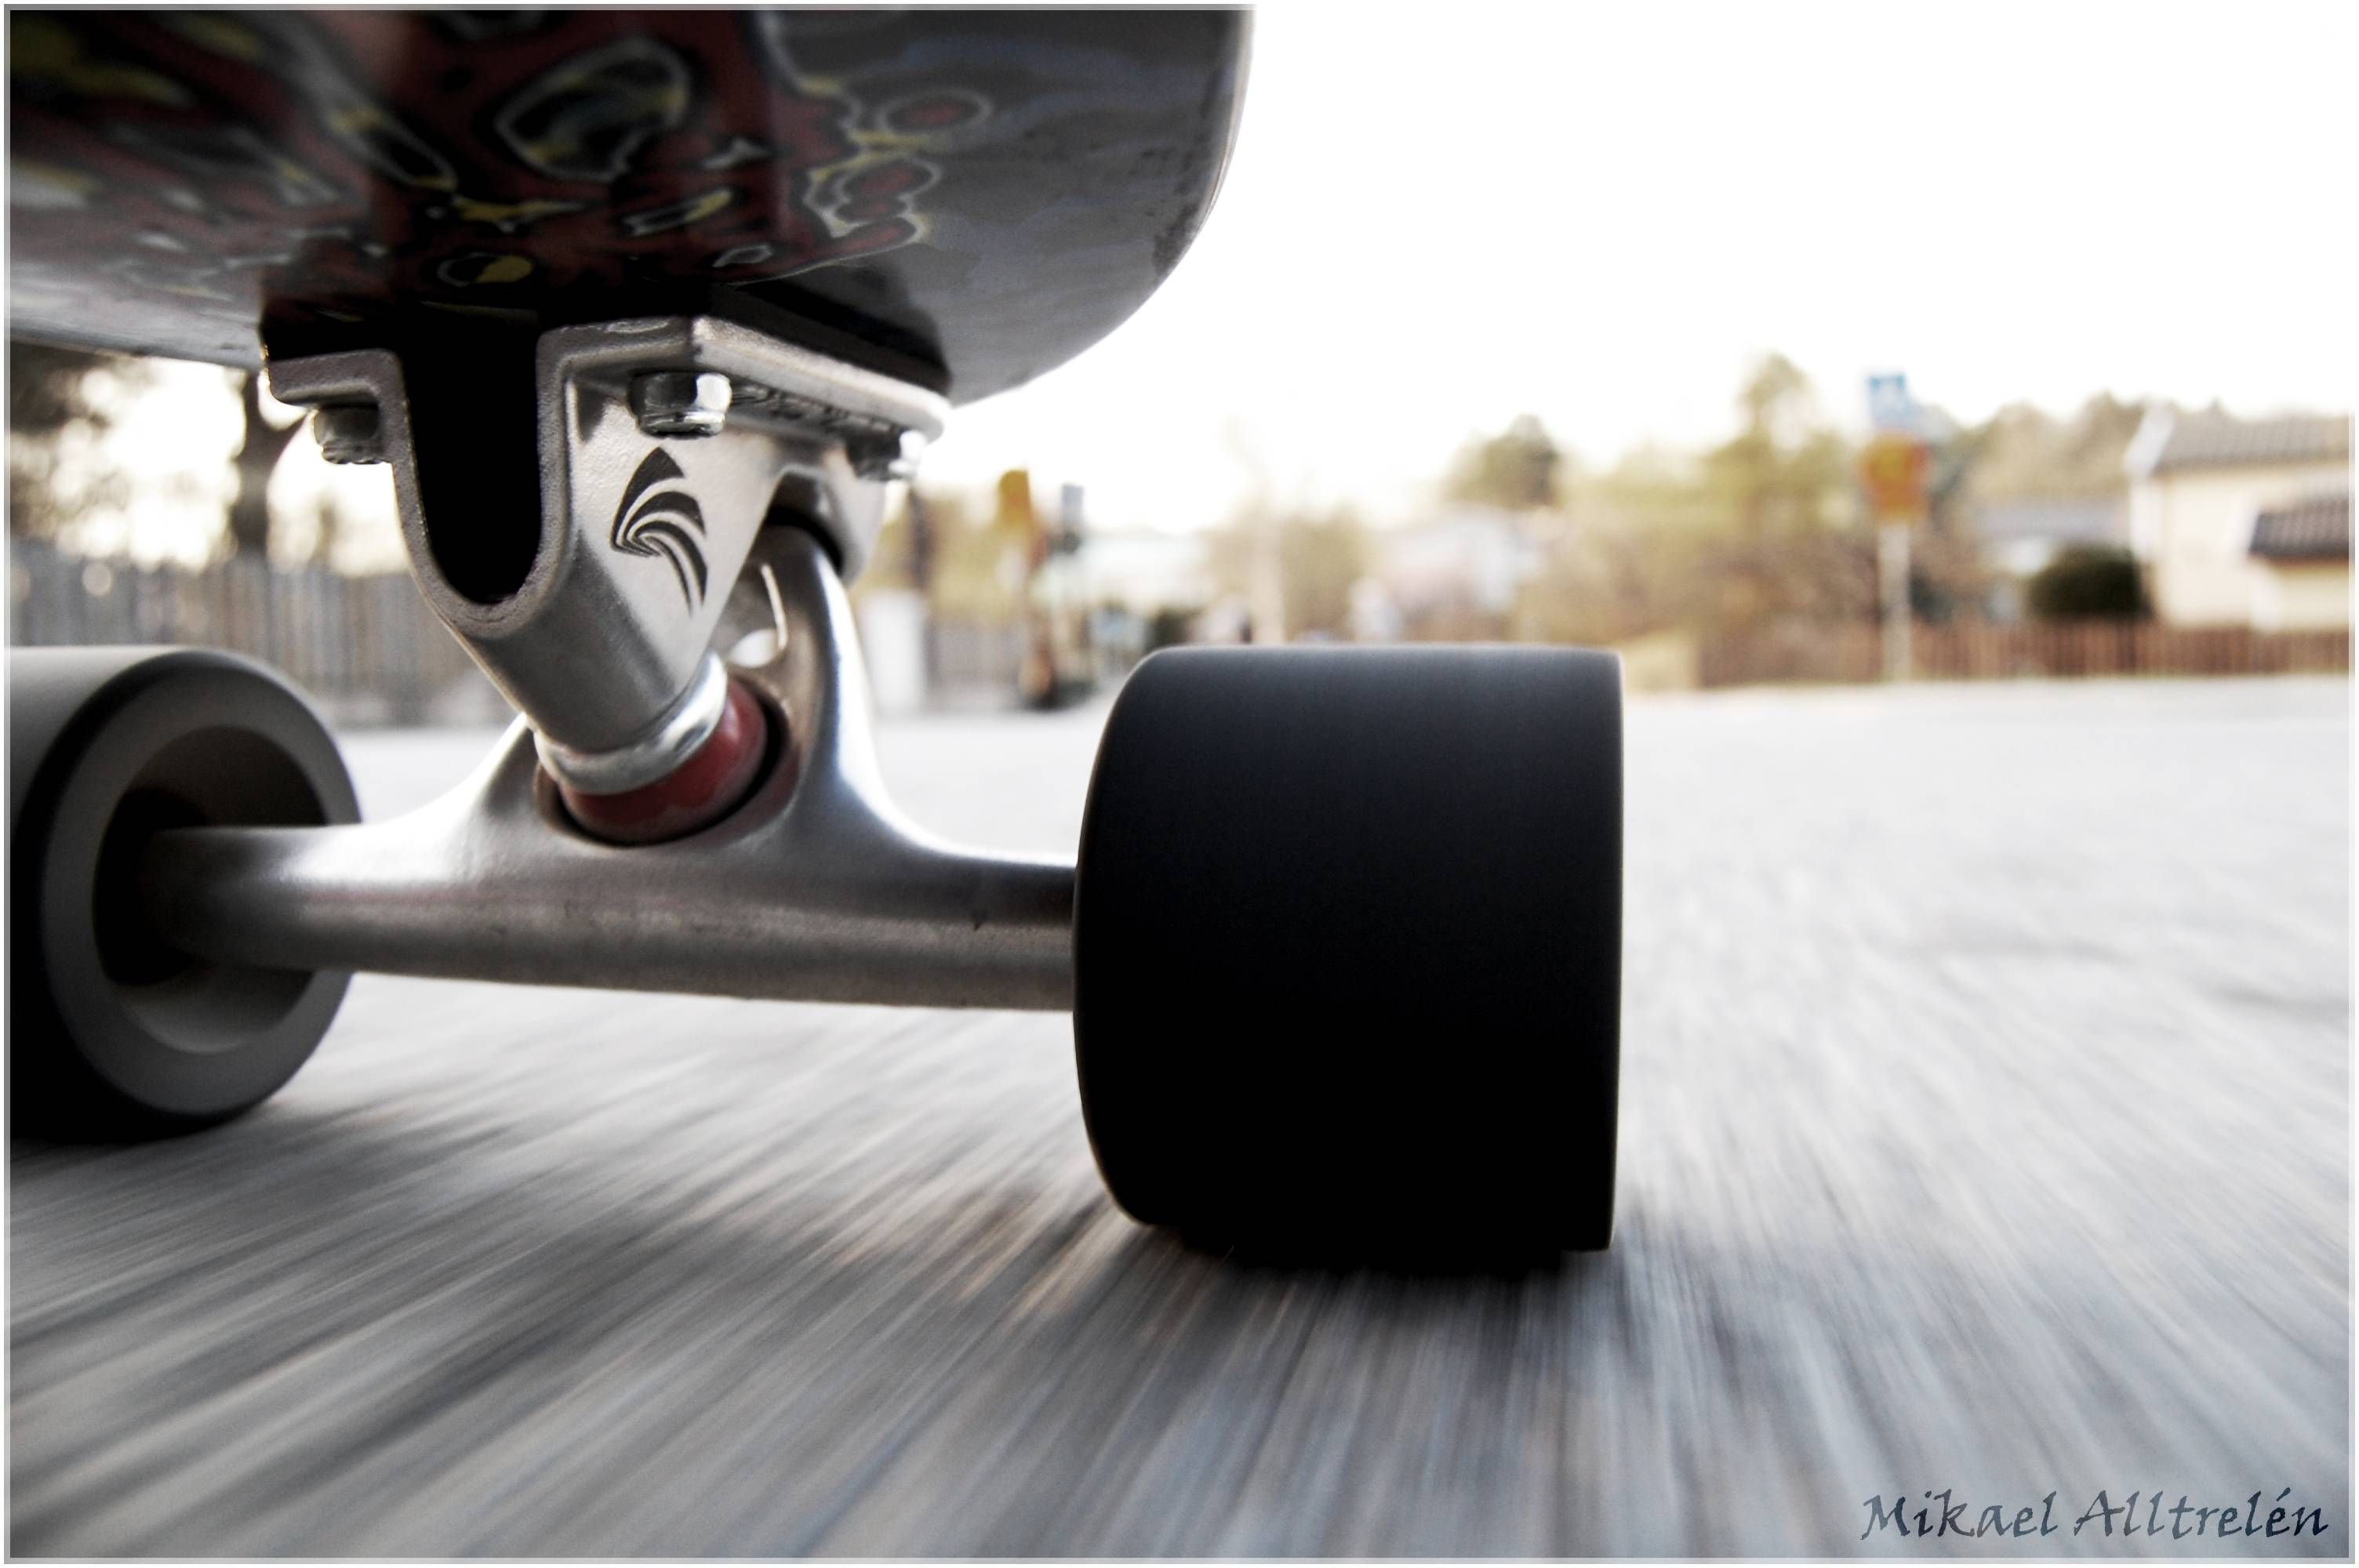 Download Longboard Iphone Wallpaper Hd Backgrounds Download